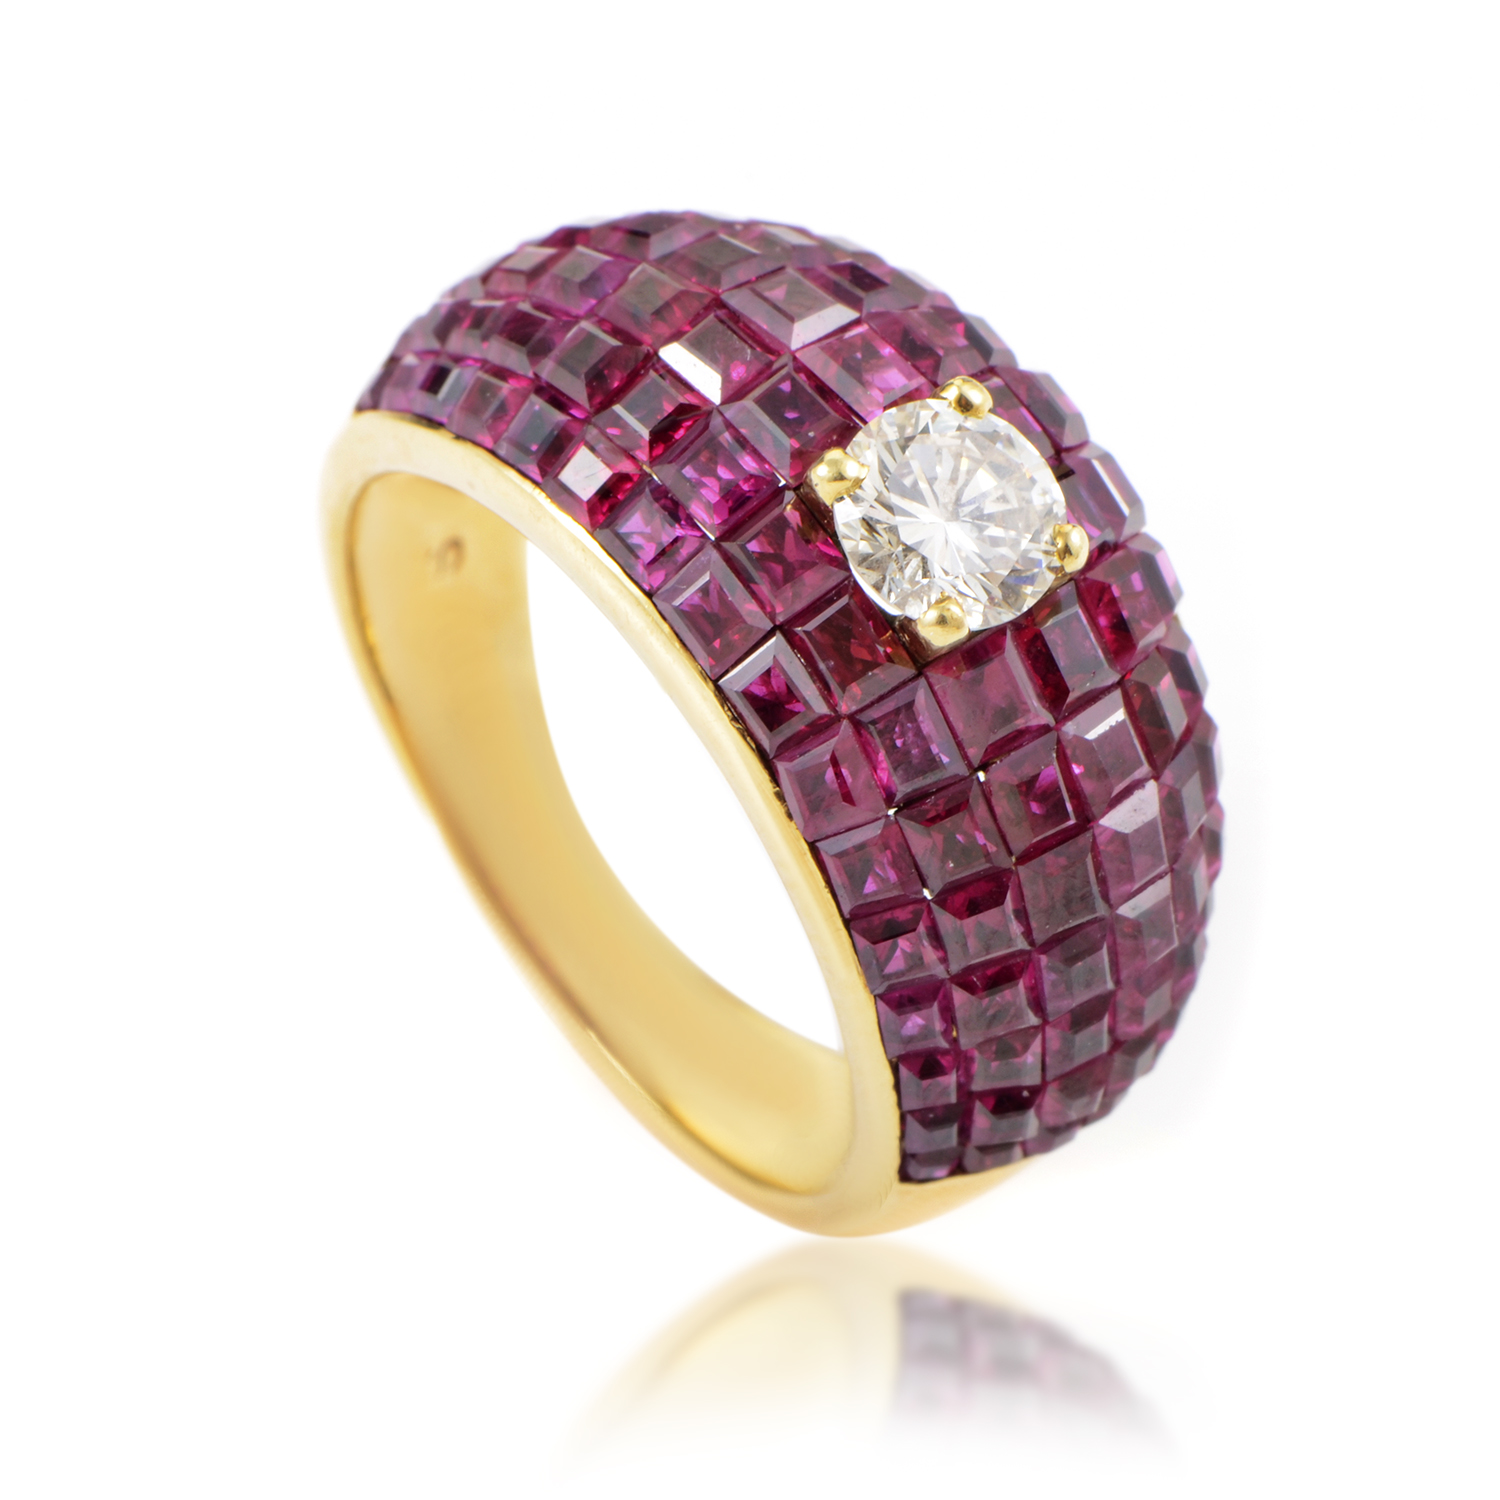 Women's 18K Yellow Gold Diamond Solitaire Ruby Ring MFC09-061316